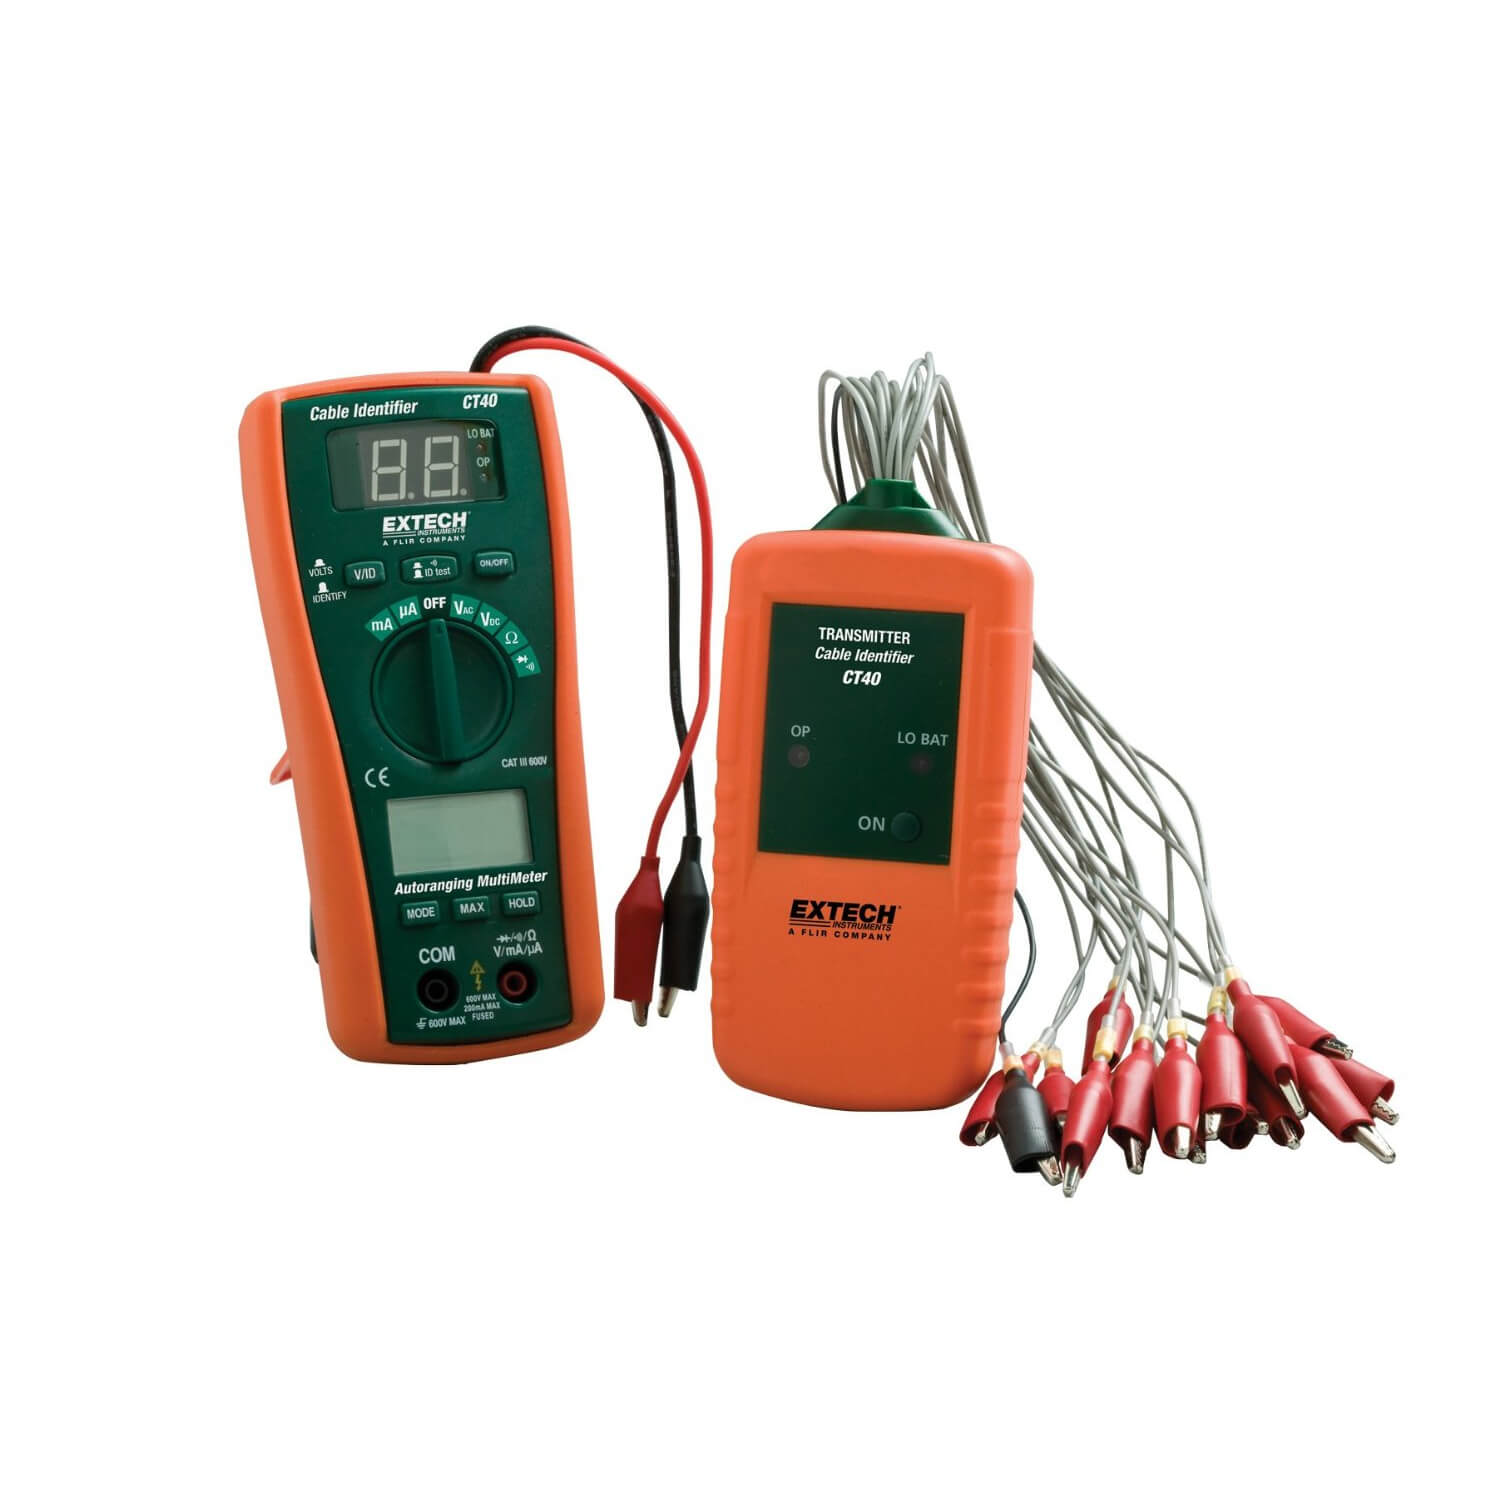 hight resolution of extech wire tracer circuit identifier testers and tools extech ct40 cable testing and identifier kit